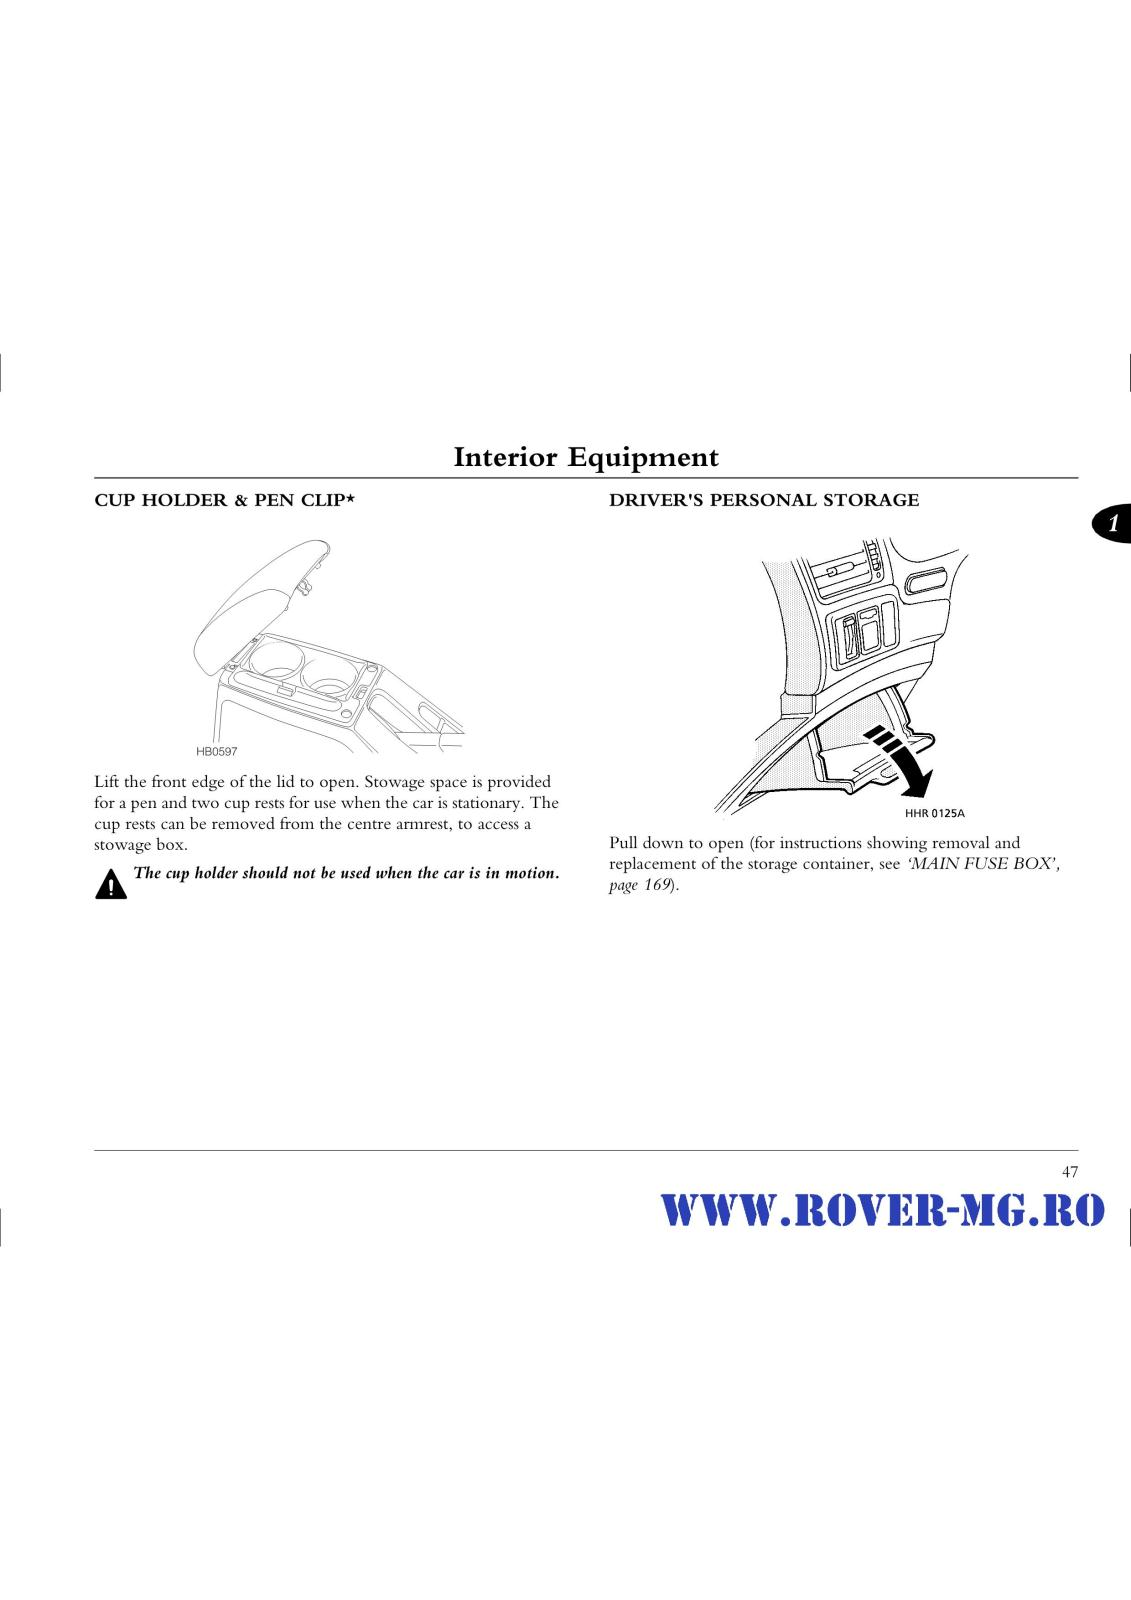 Index Of Forum 1documentatii Rovermg Rover 45 Handbook Files Res Fascia Main Fuse Box Diagram Page0047 I2